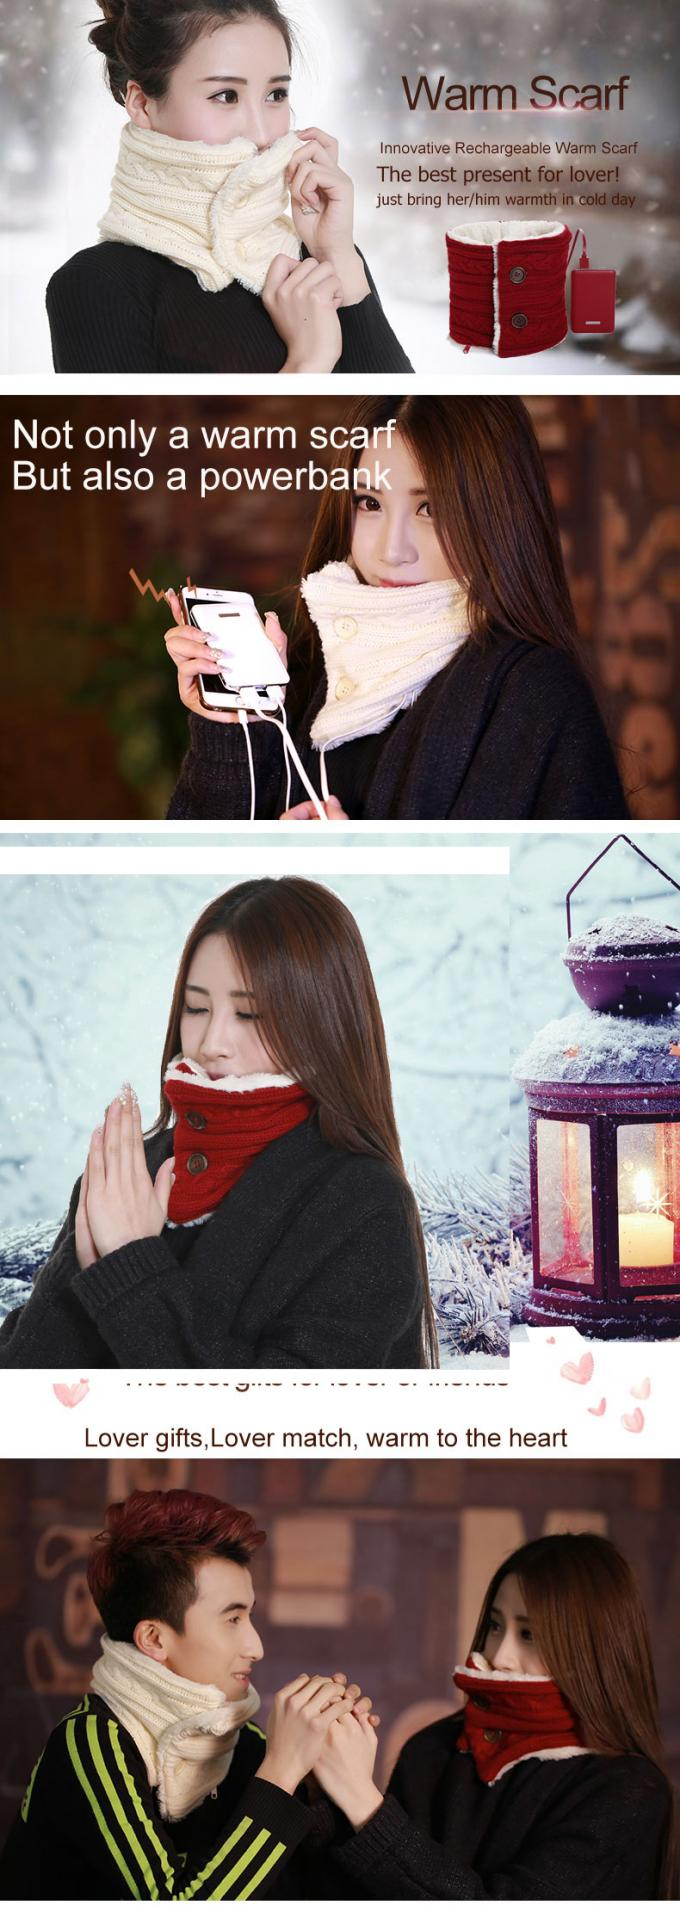 USB Charging Battery Operated Heated Scarf 1.2m Cable Innovative Fashion Design